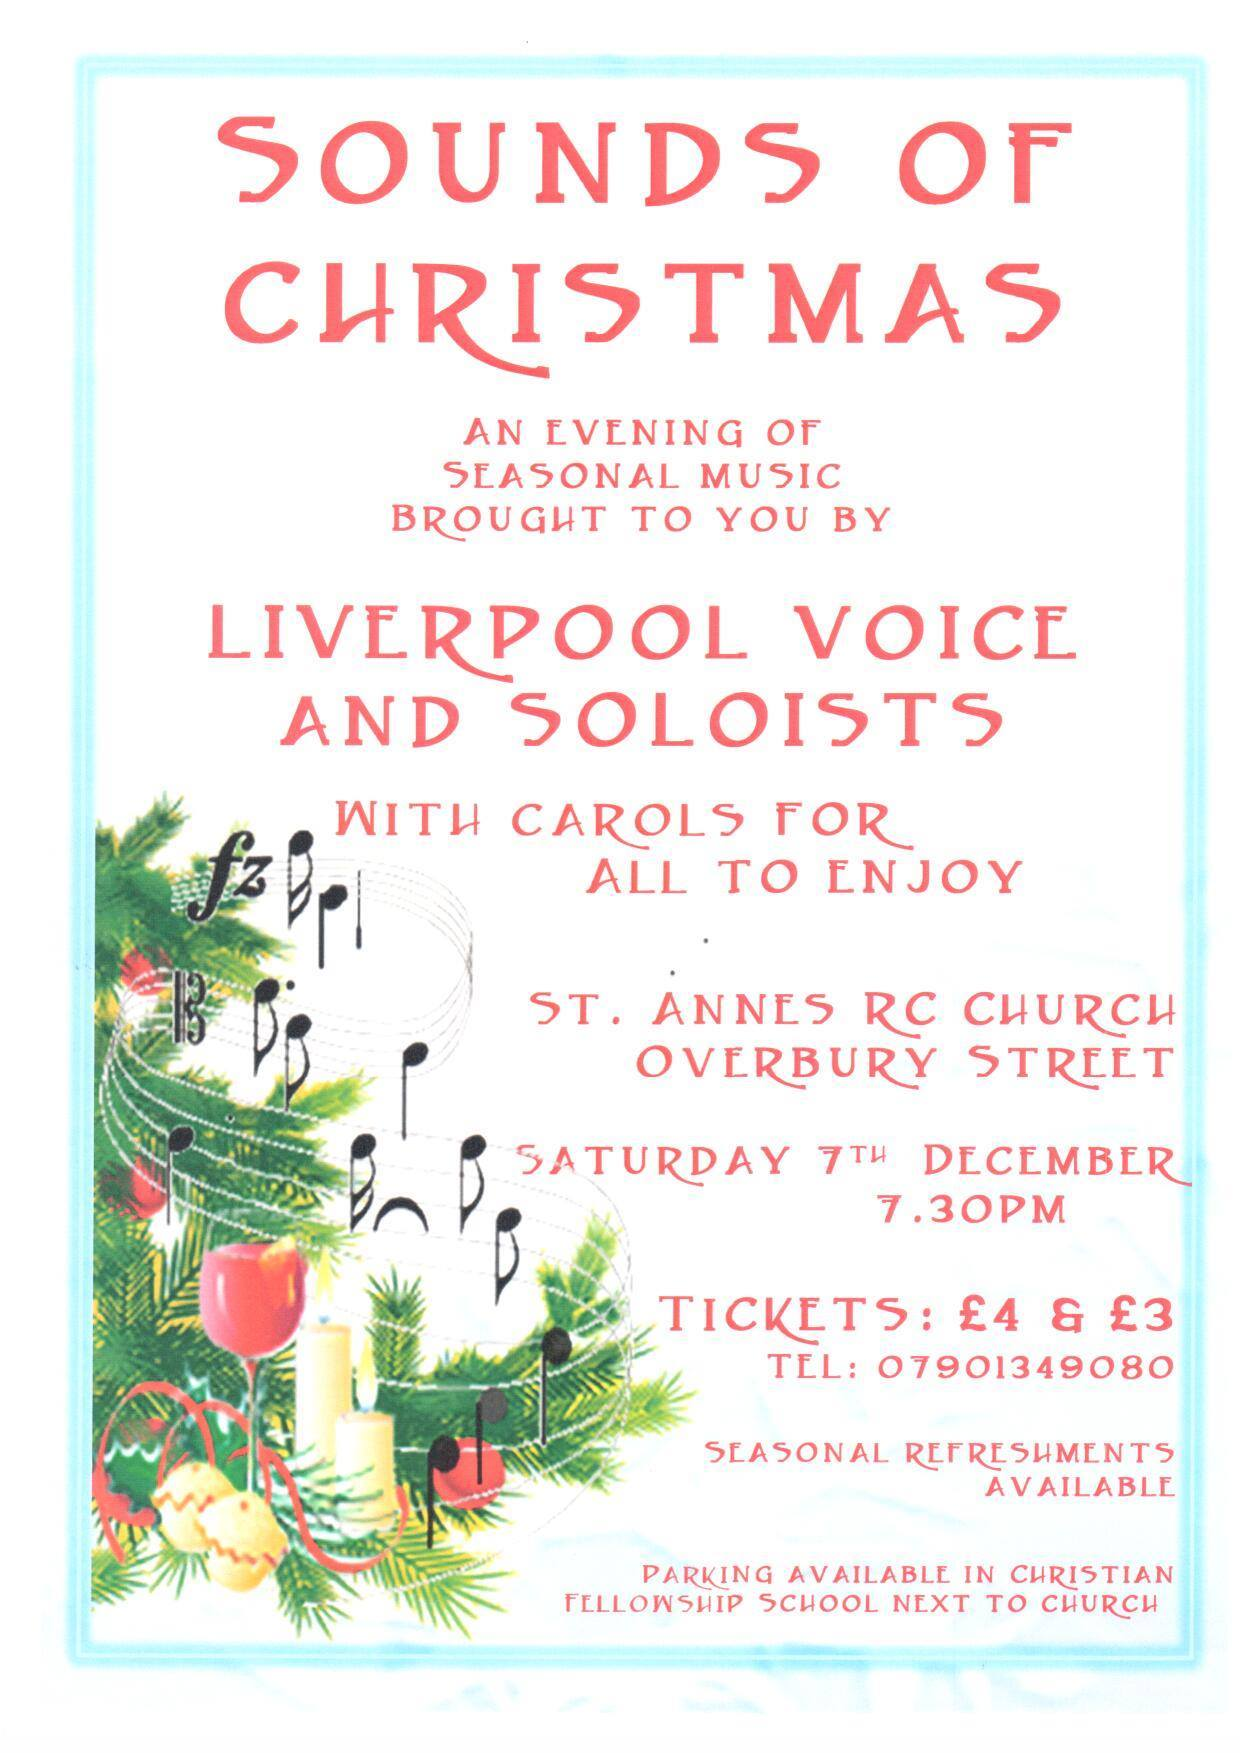 Sounds of Christmas poster by Corinne